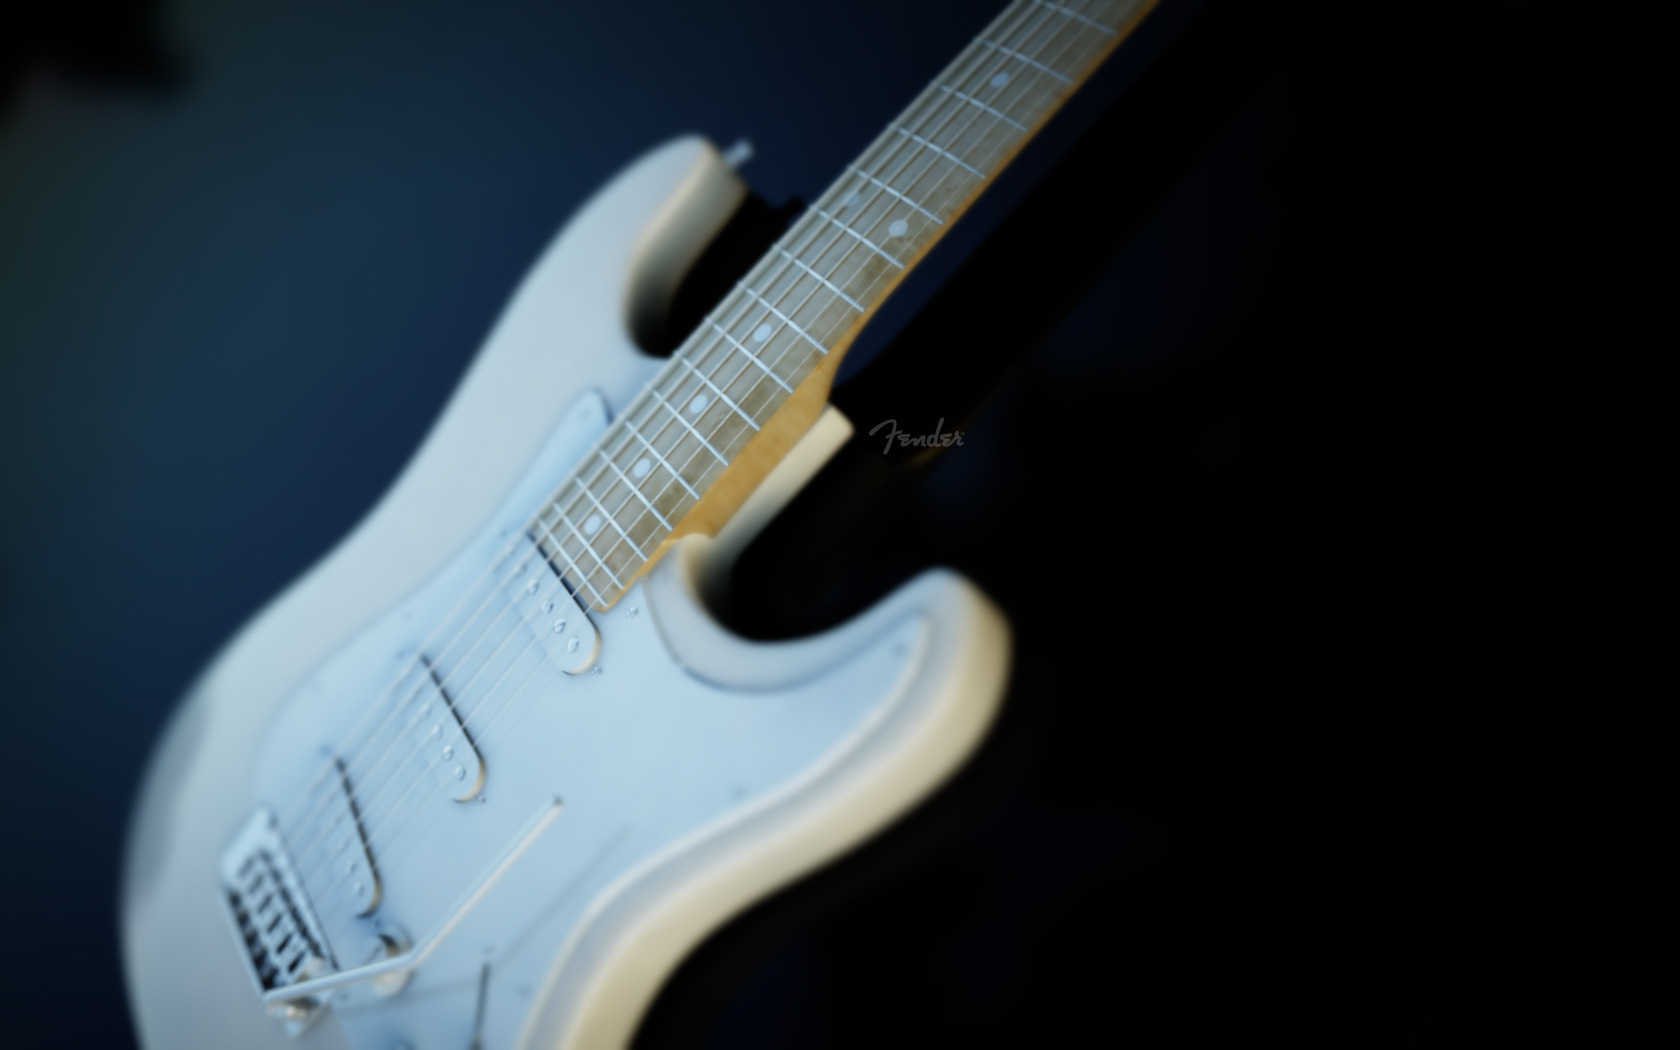 Fender Guitar Wallpaper for Computer - WallpaperSafari